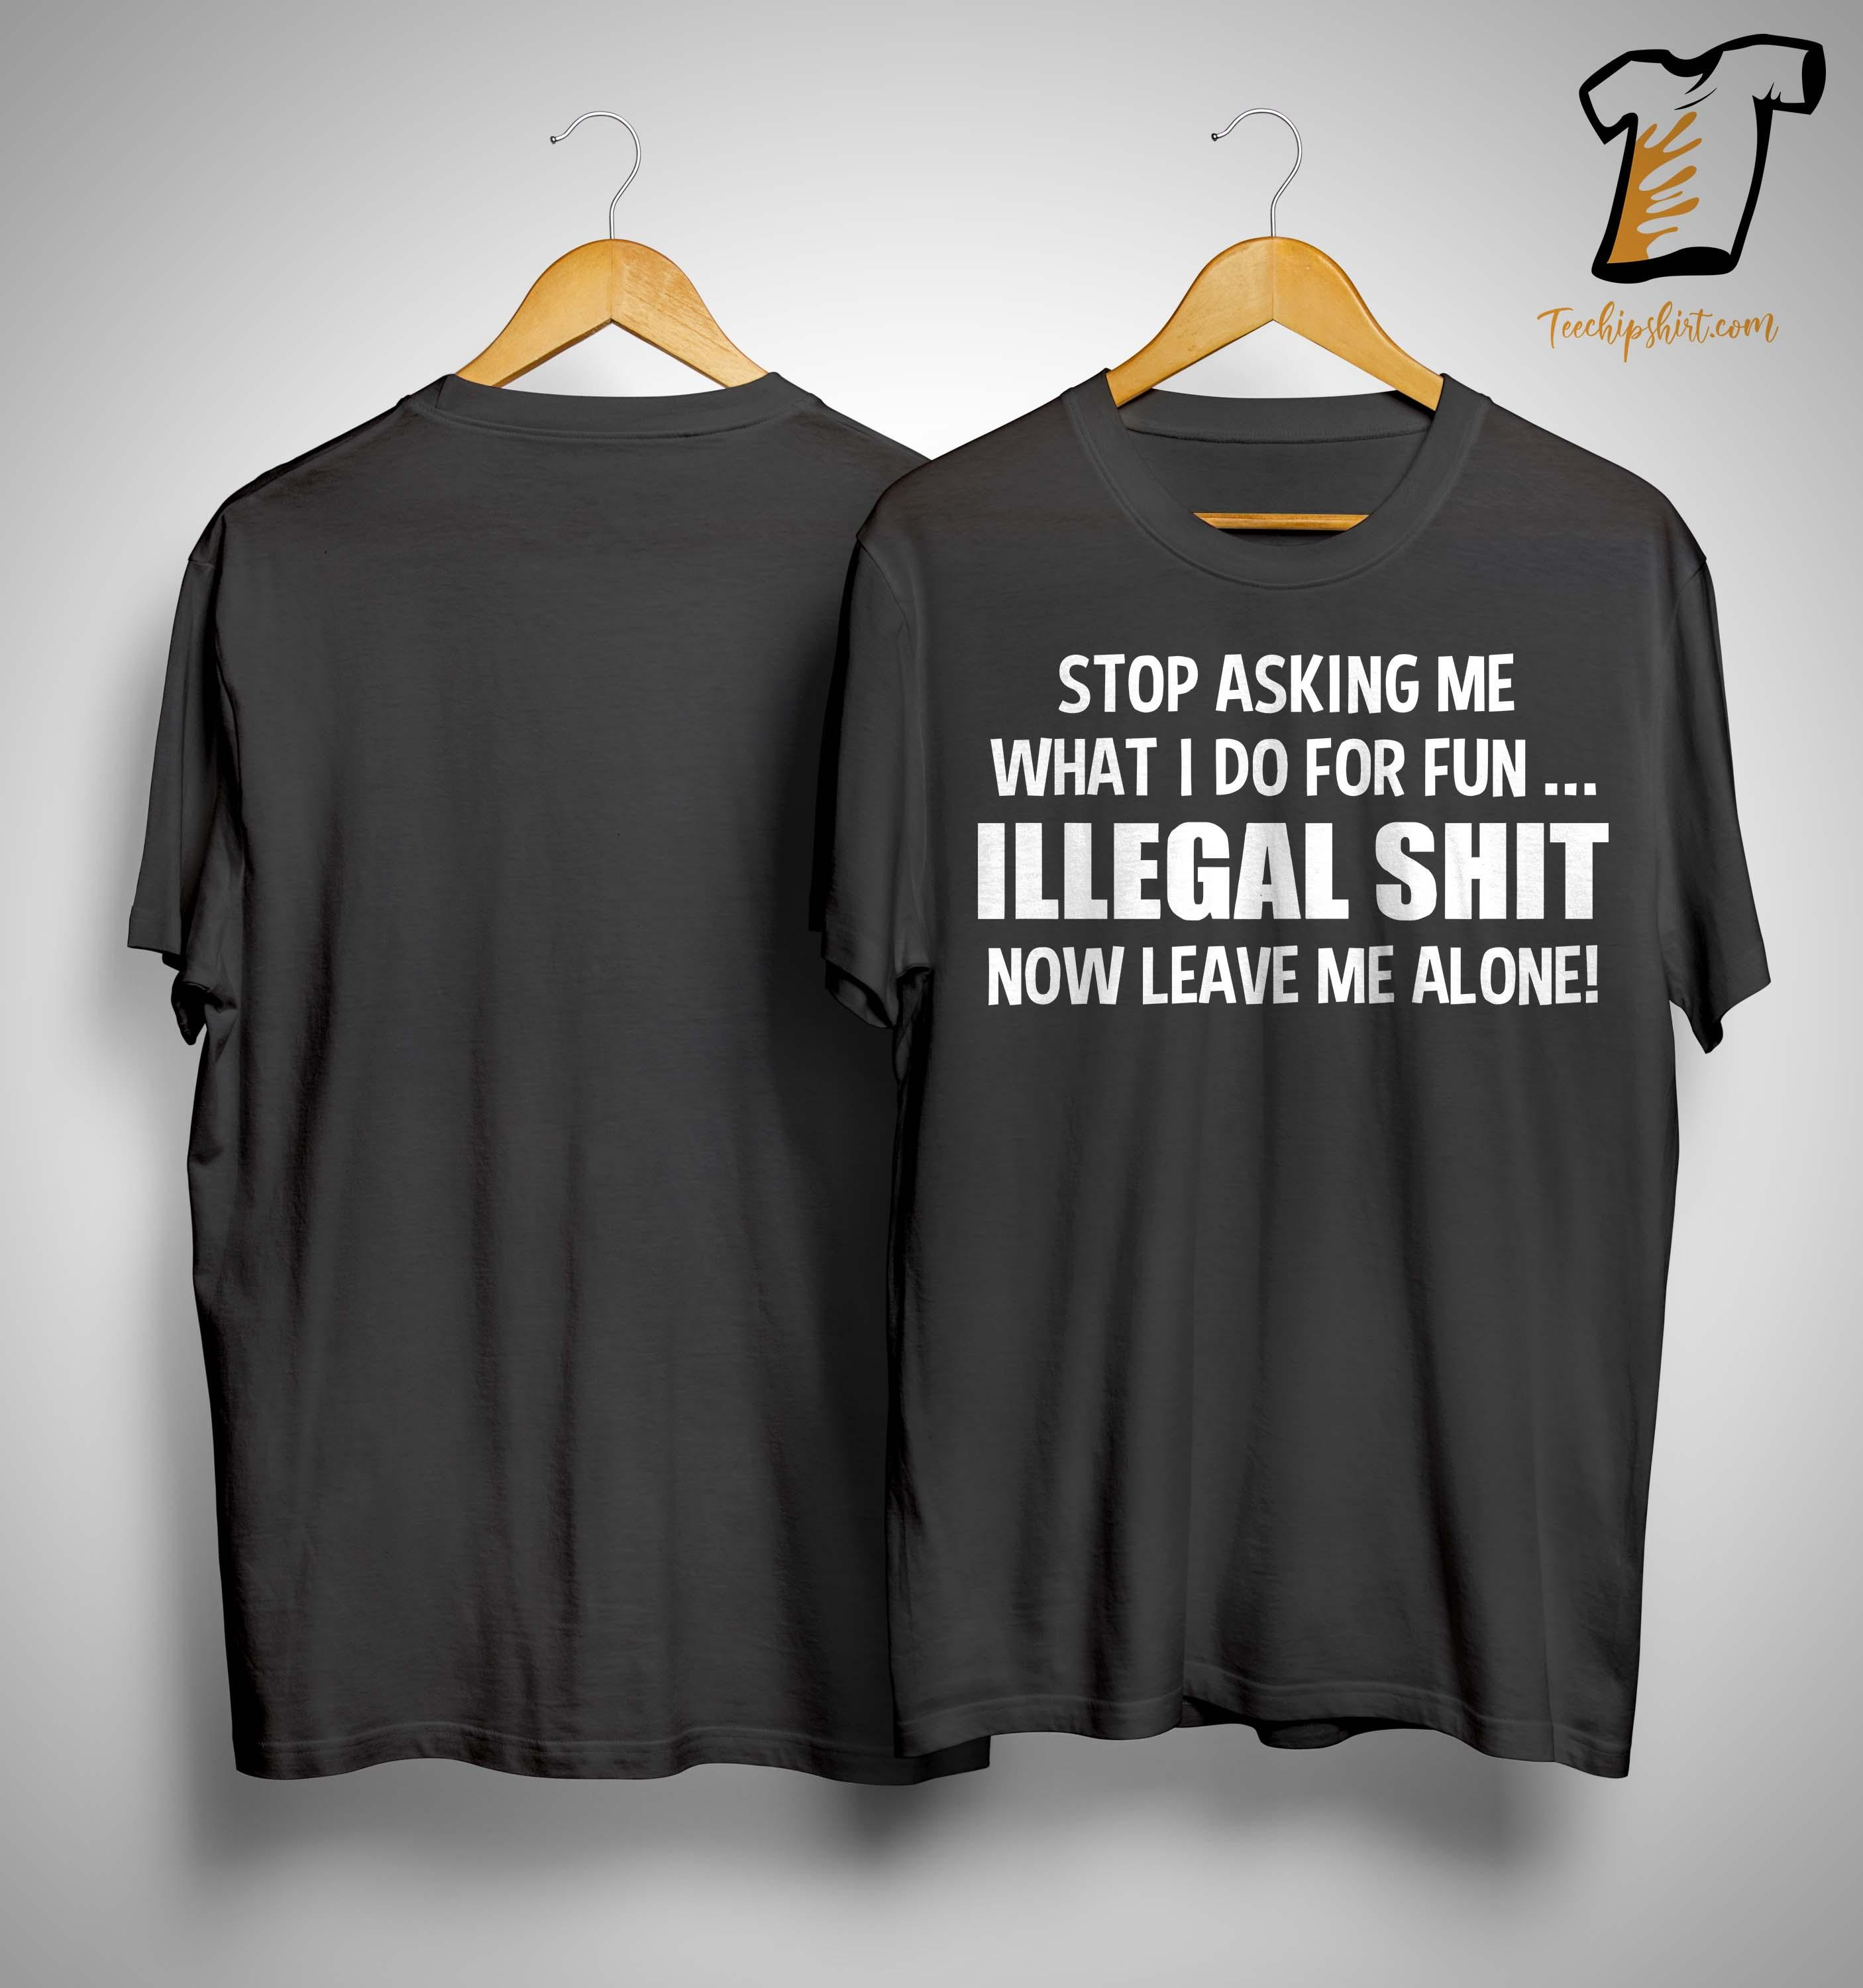 Stop Asking Me What I Do For Fun Illegal Shit Now Leave Me Alone Shirt